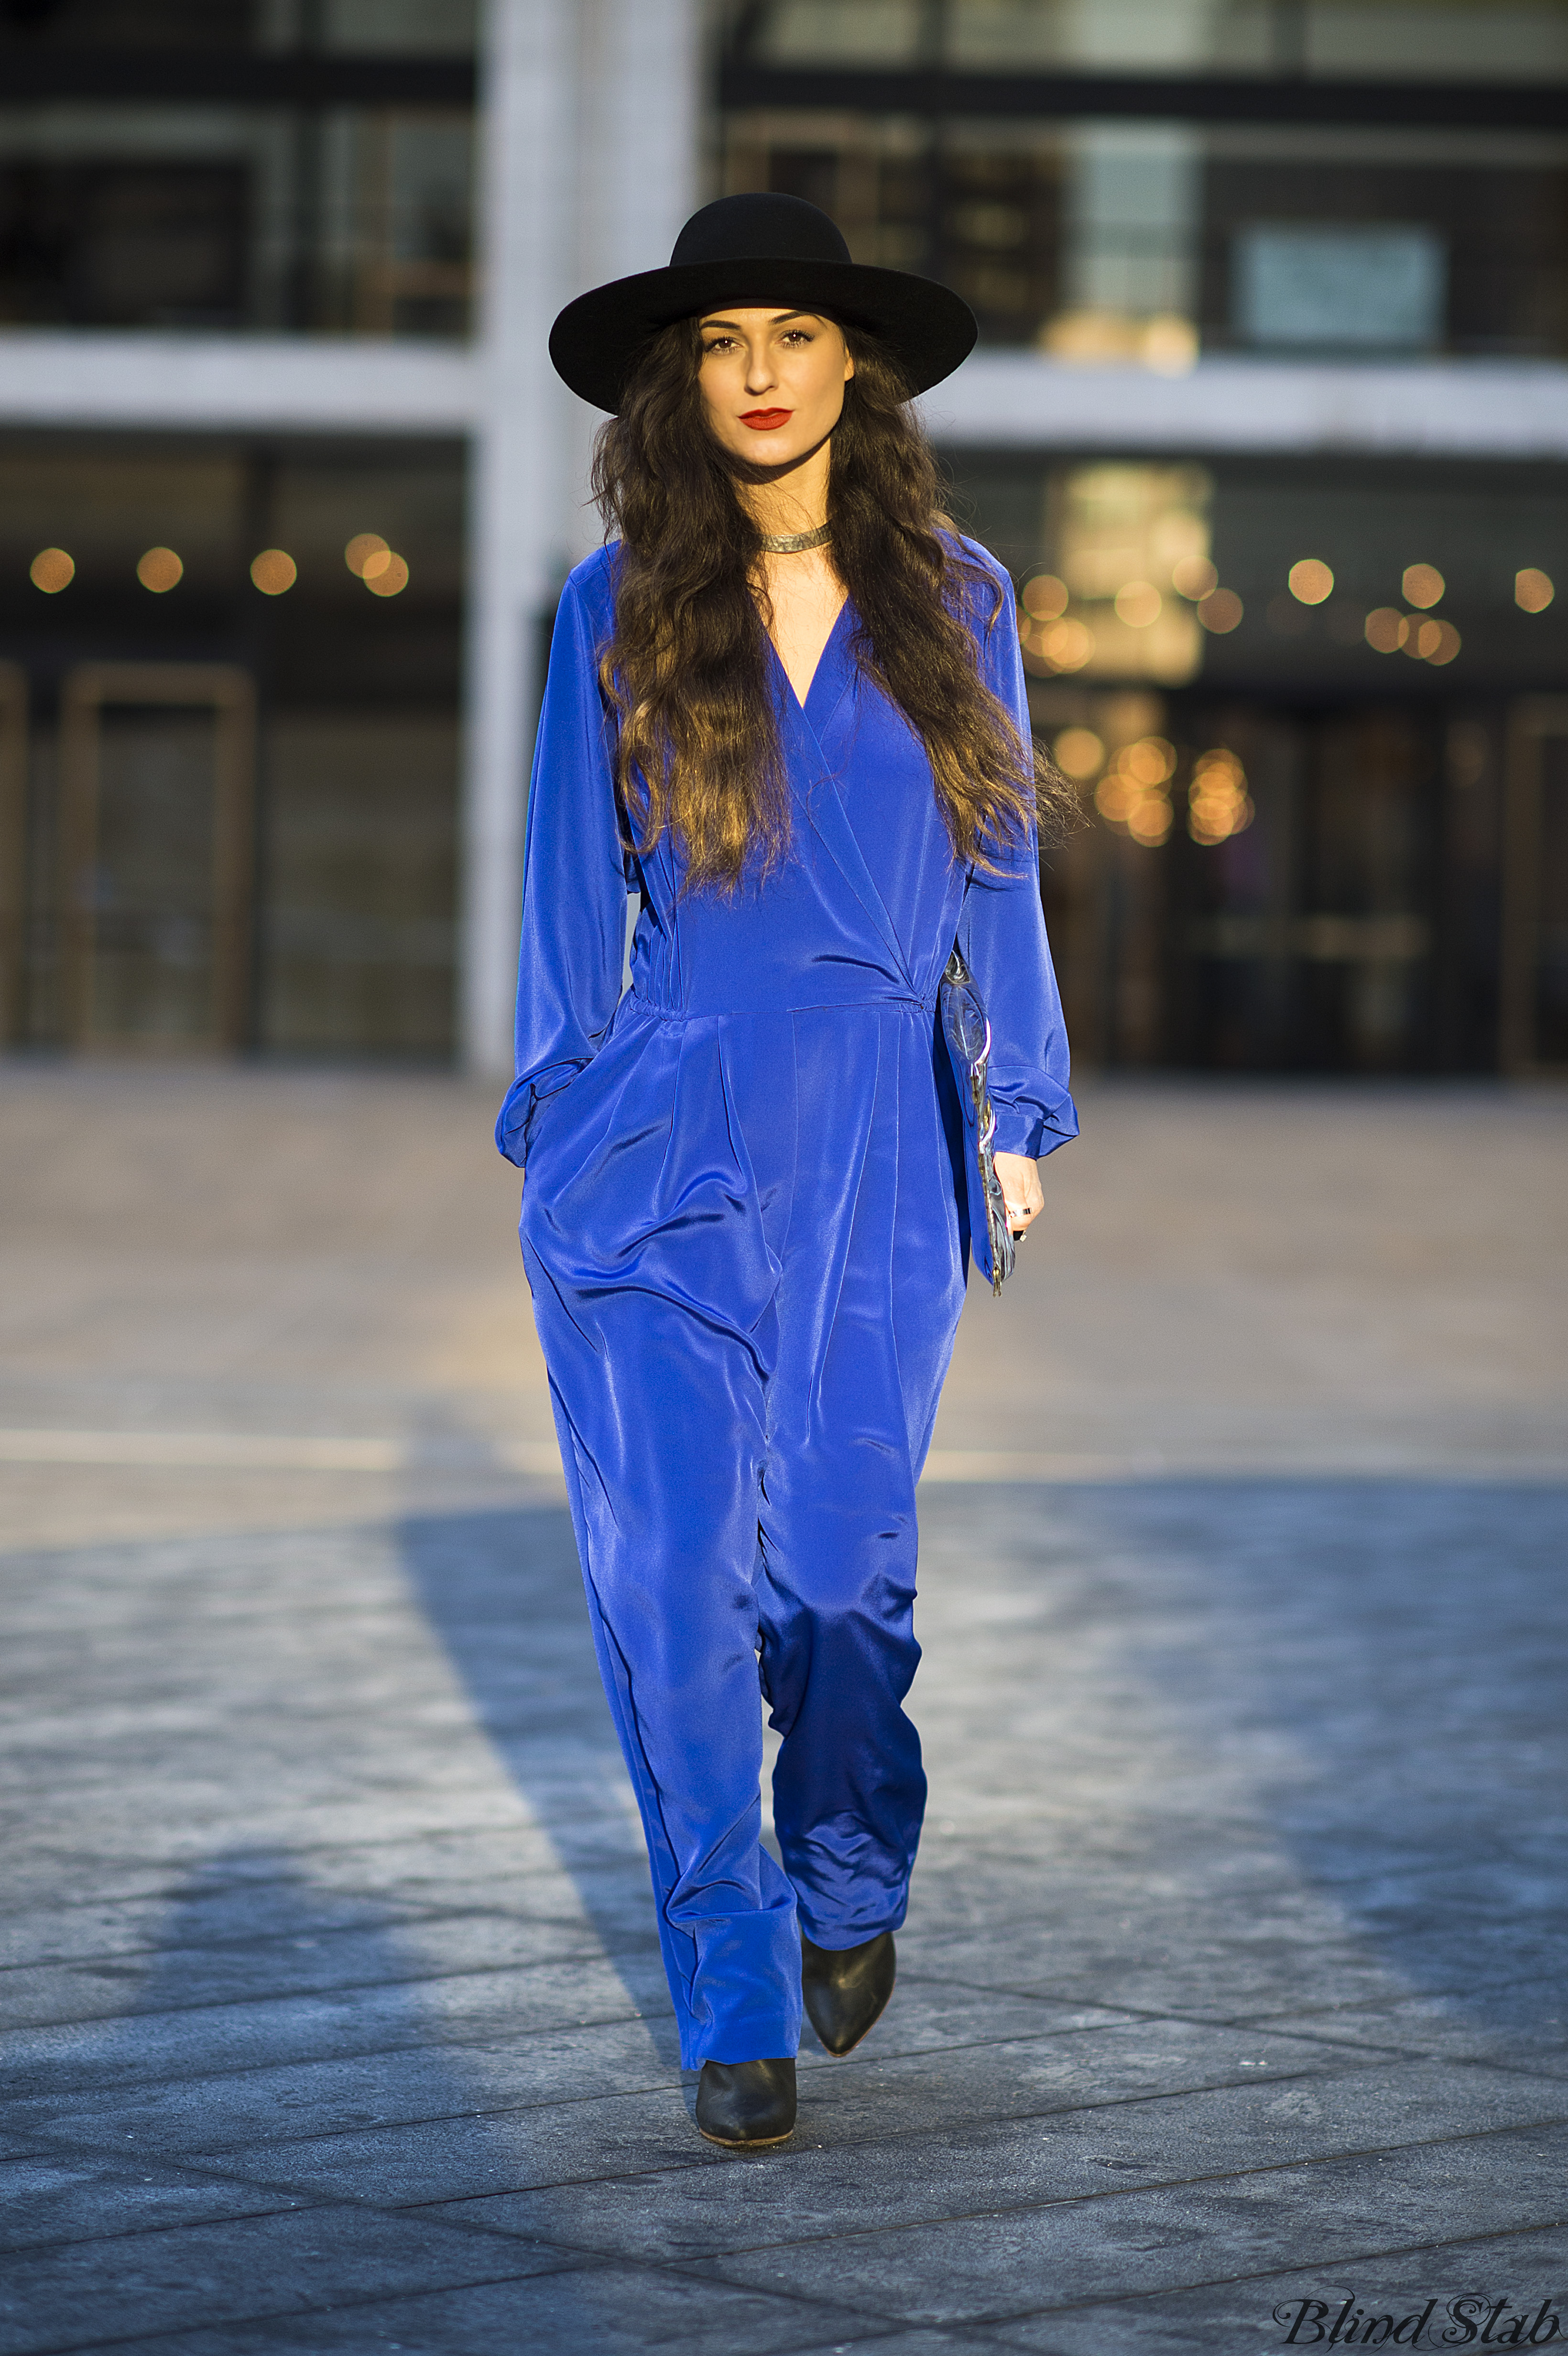 Blue-Jumpsuit-Wide-Brim-Hat-NYC-Street-Style